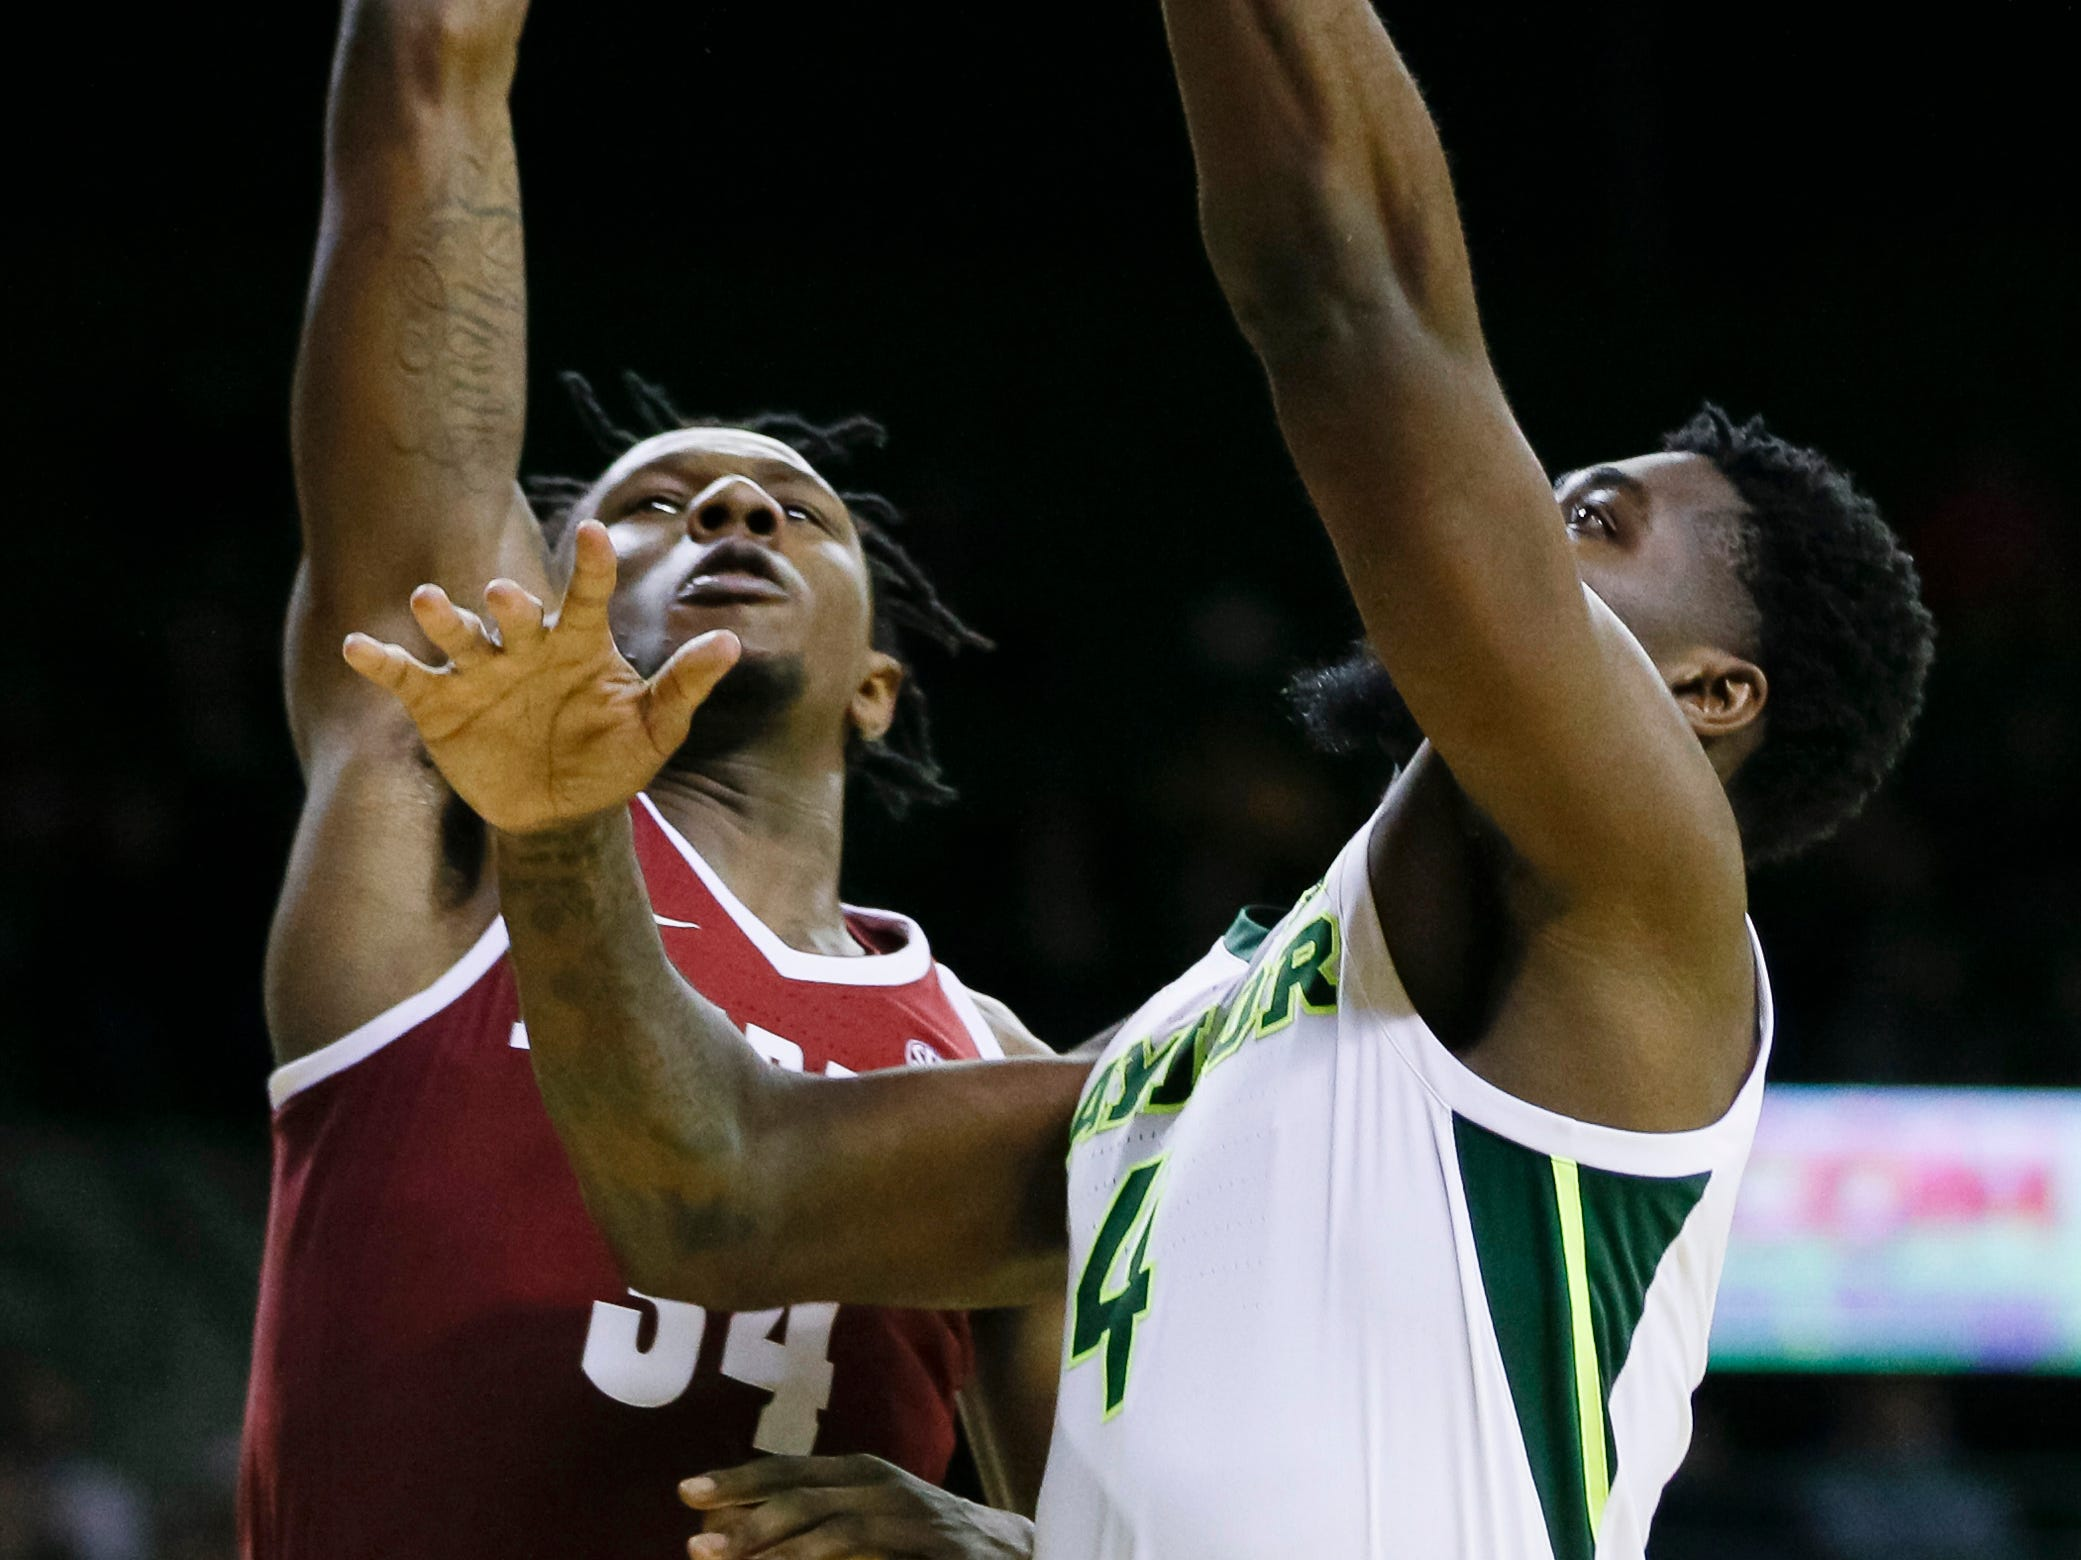 Jan 26, 2019; Waco, TX, USA; Alabama Crimson Tide guard Tevin Mack (34) attempts to block a shot by Baylor Bears guard Mario Kegler (4) during the second half at Ferrell Center. Mandatory Credit: Ray Carlin-USA TODAY Sports